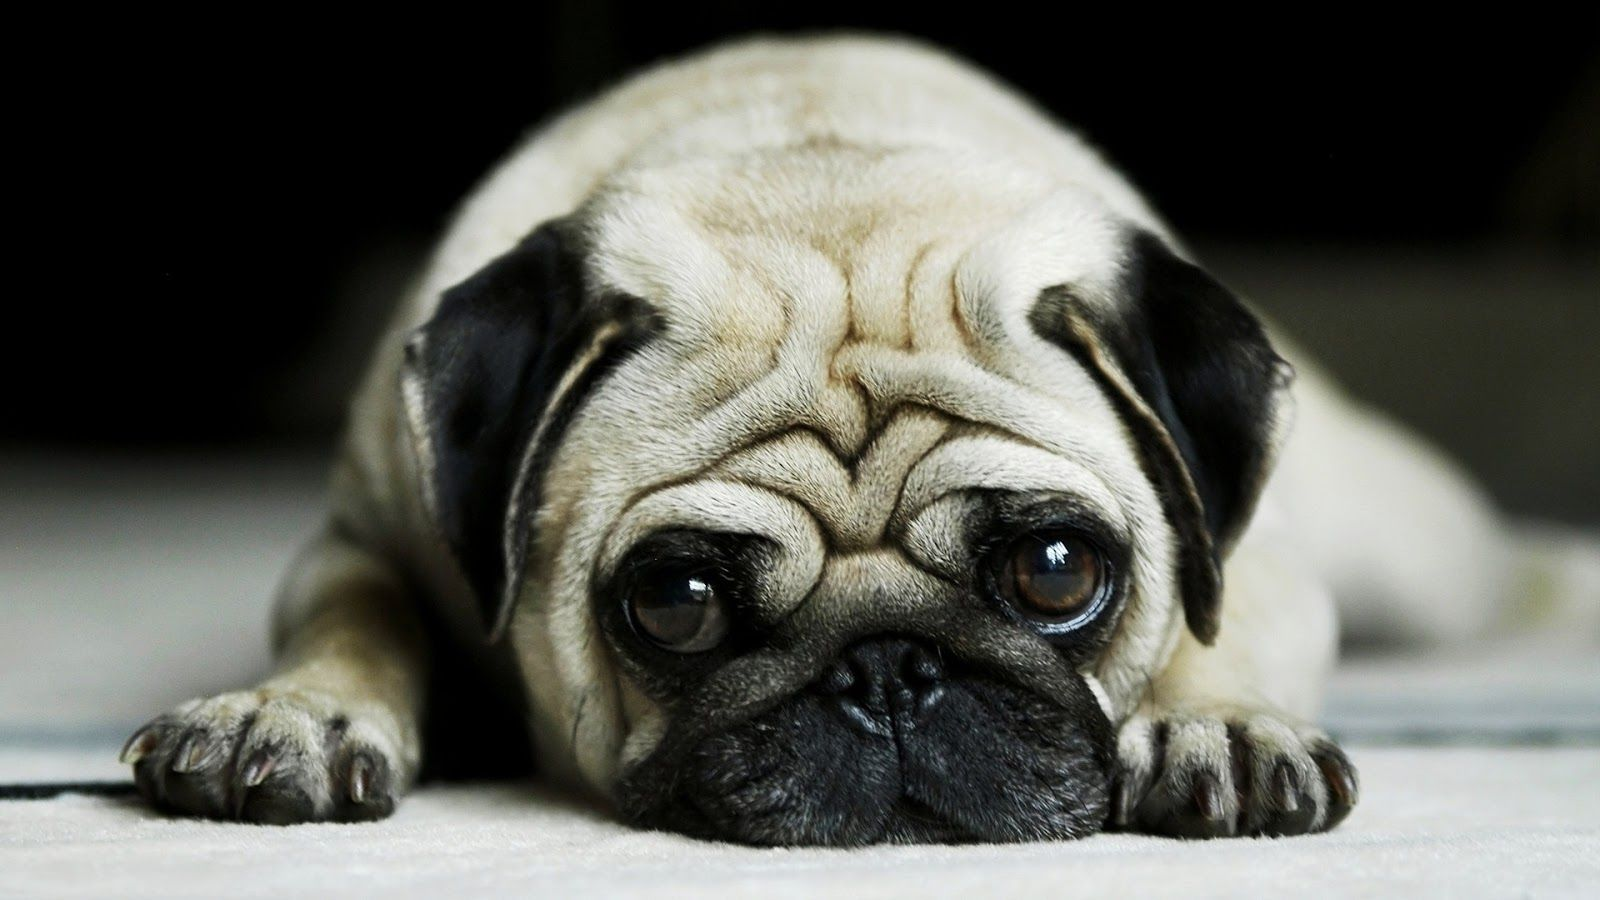 Pug Dogs Wallpaper Posted By Ethan Tremblay